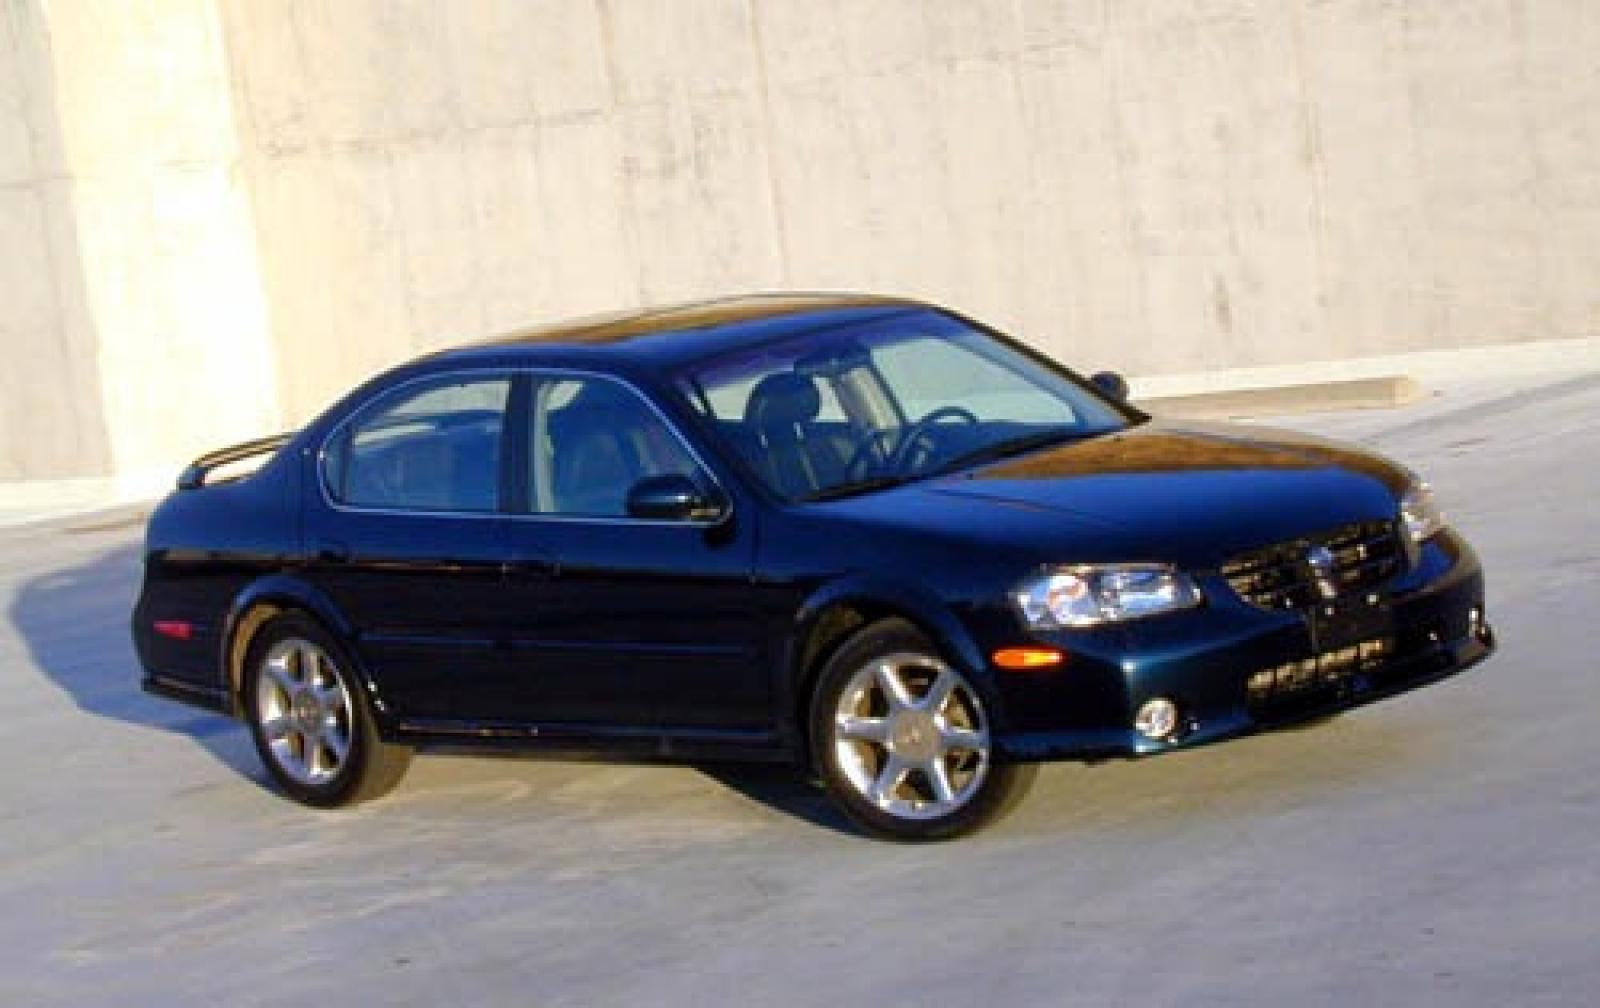 2001 nissan maxima information and photos zombiedrive. Black Bedroom Furniture Sets. Home Design Ideas